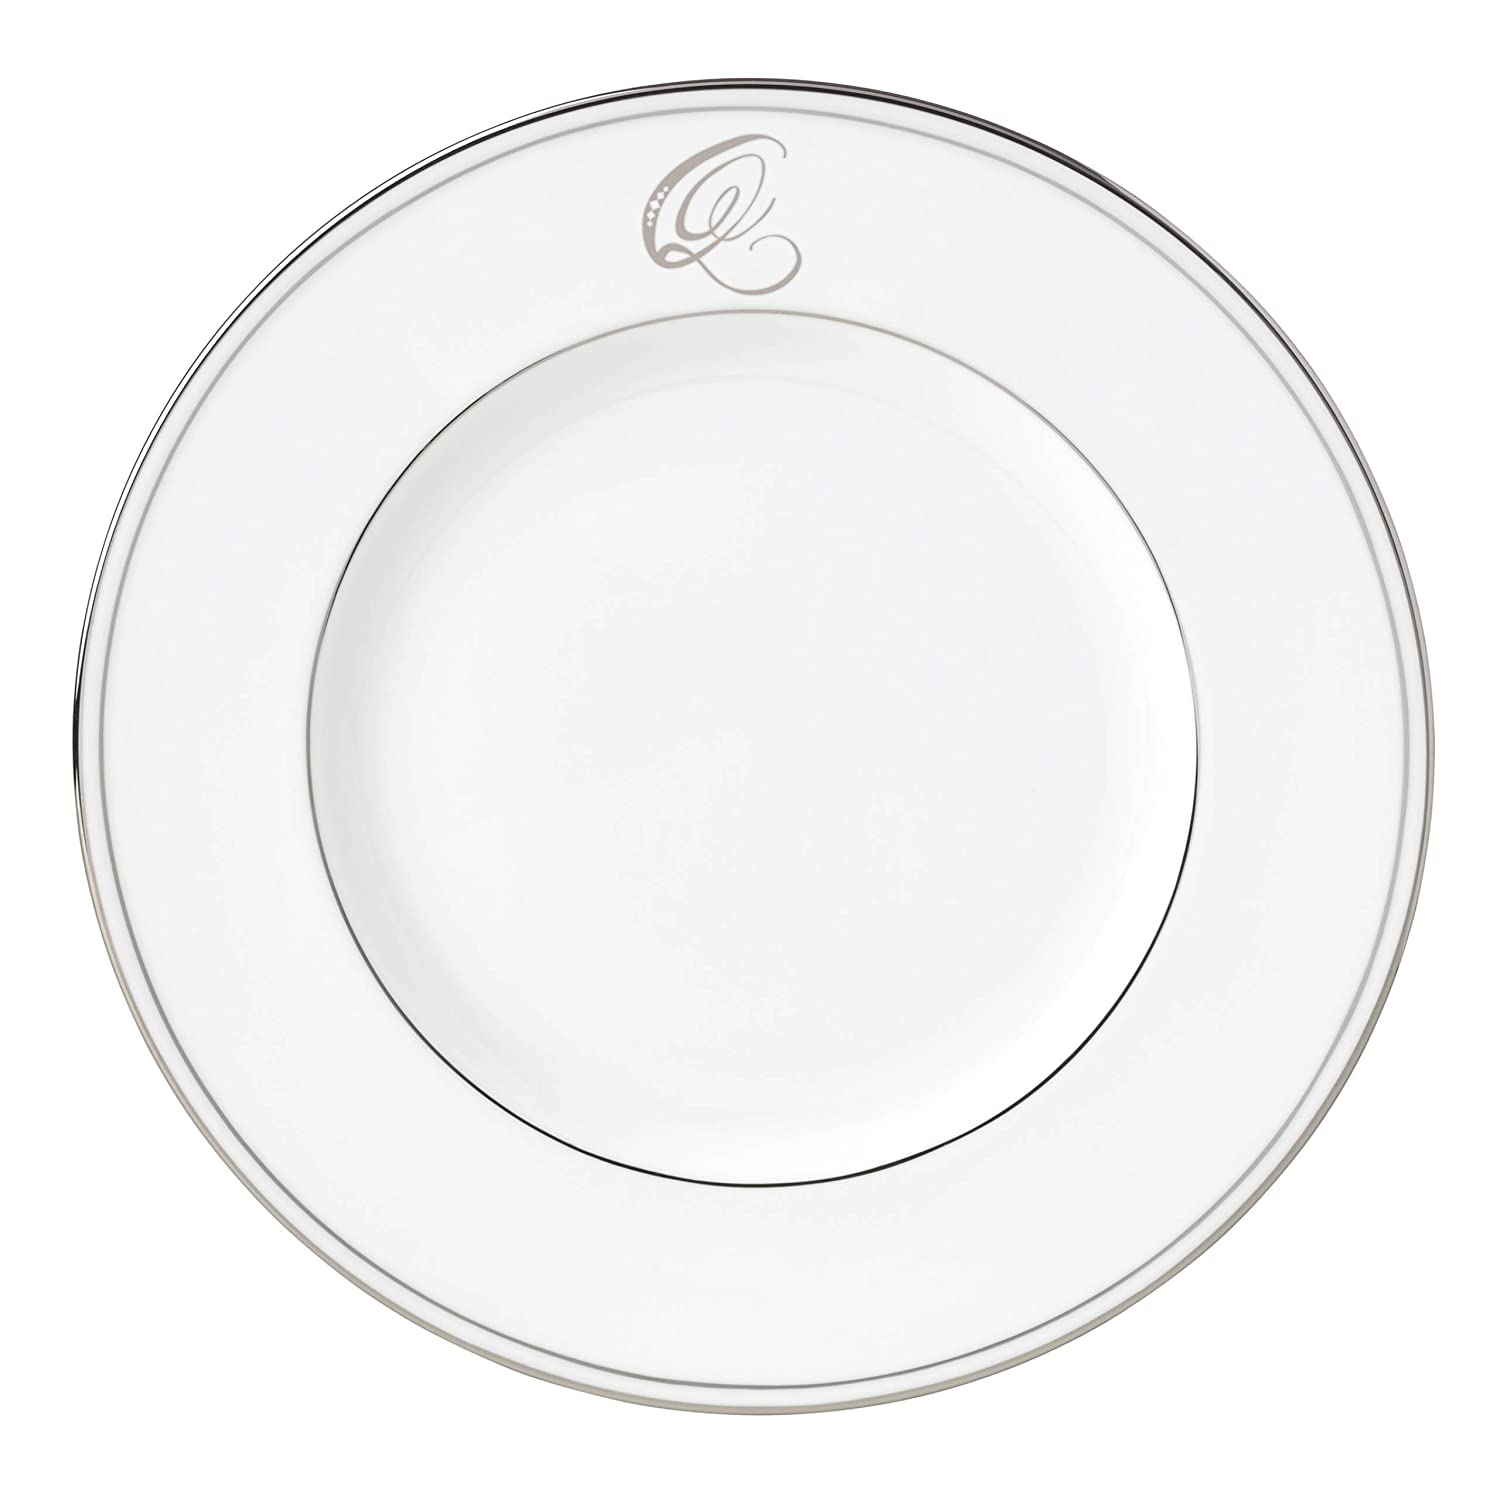 Diameter: 10 9H Sophisticated Pedestal Cake Plate with Glass Cover Diameter: 10 9H Glazze Crystal APP-458-PL Appalachia Luxury Dome with Real 24K Wide Platinum Riming